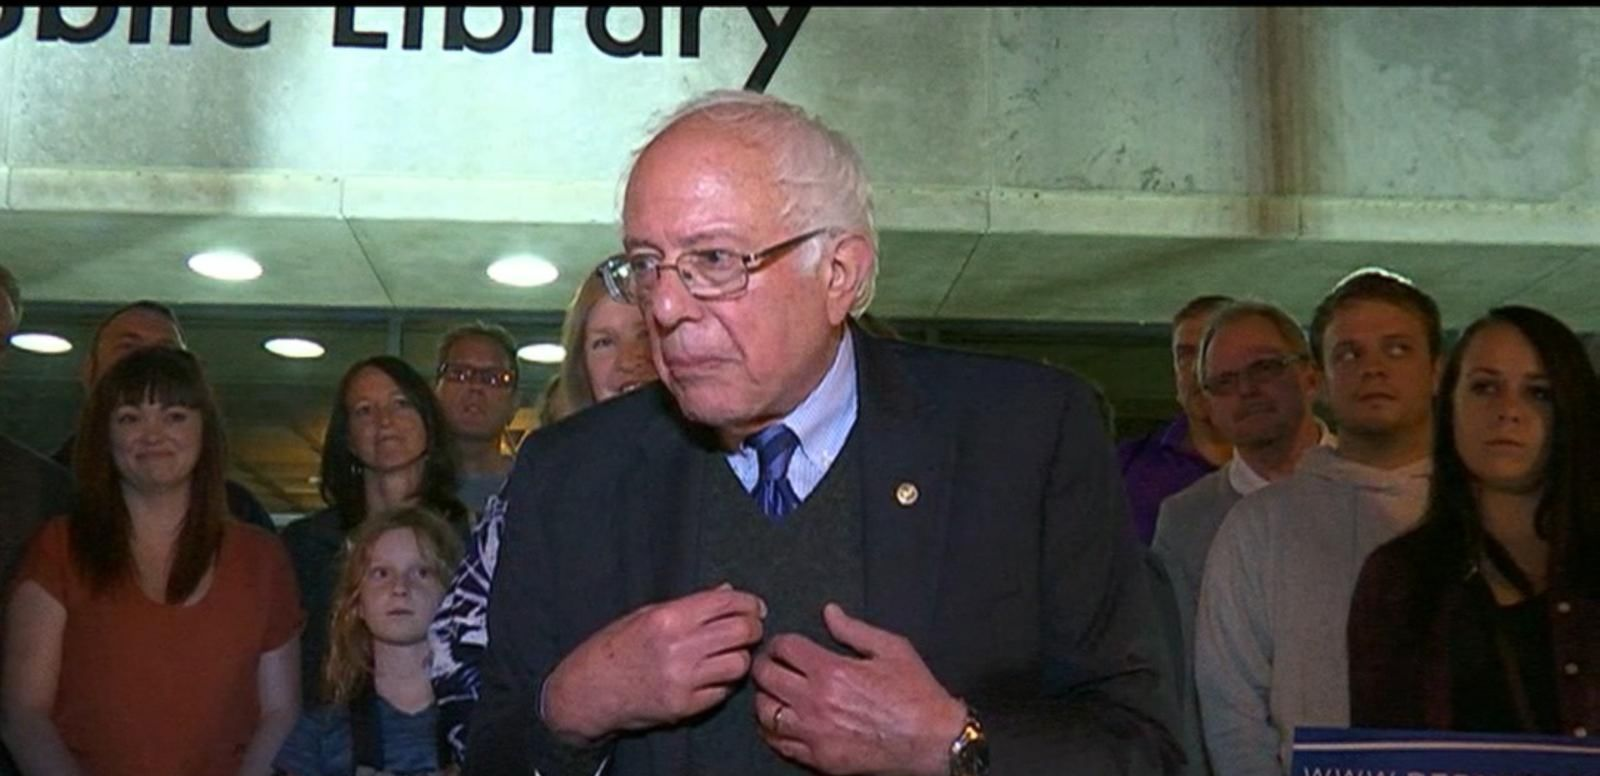 VIDEO: Bernie Sanders Delivers Remarks Amid Projected Indiana Primary Victory